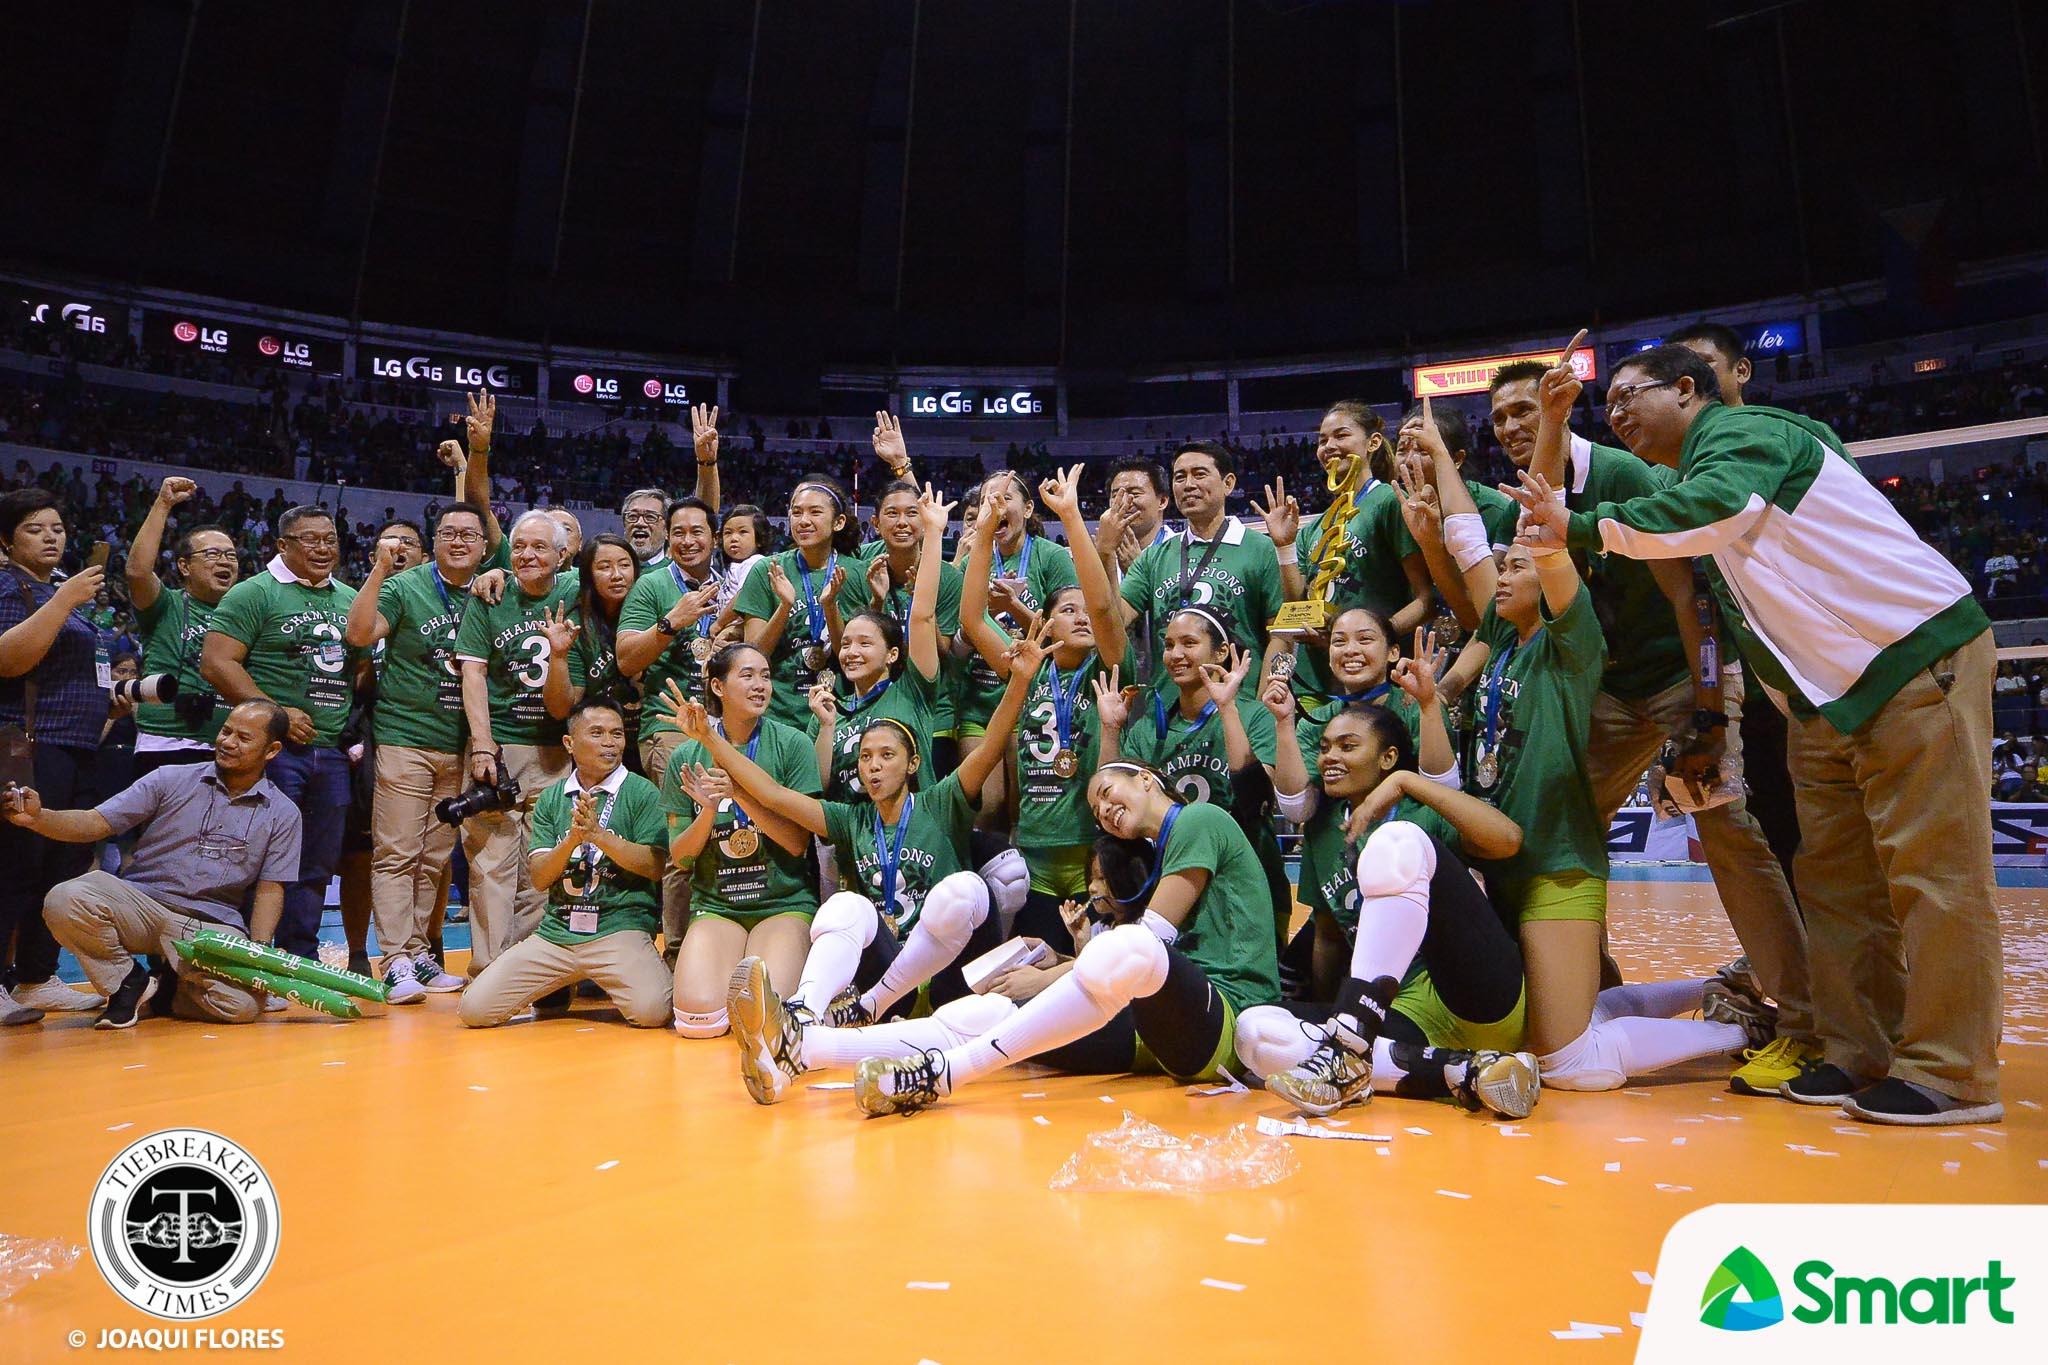 UAAP-80-Volleyball-DLSU-vs.-FEU-DLSU-champion-9526 I Love the 2010s: Best Teams of the Decade Basketball Football Gilas Pilipinas Mixed Martial Arts News ONE Championship PBA Philippine Azkals Softball Volleyball  - philippine sports news